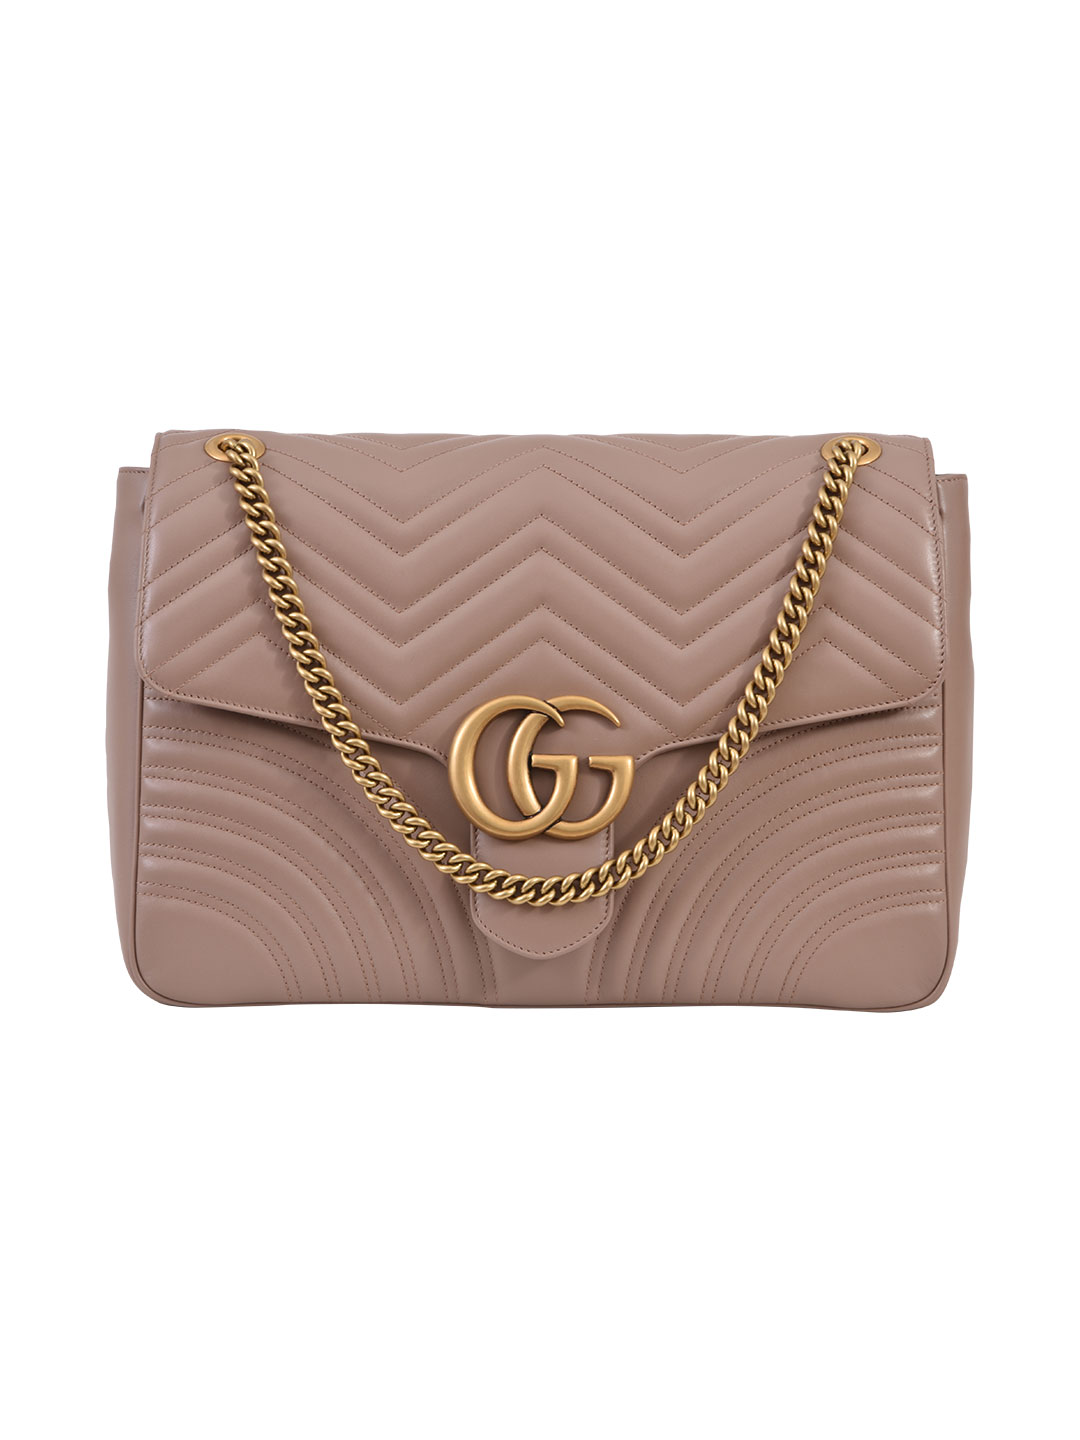 e5ee1f5796584f Gucci Gg Marmont Large Quilted Leather Shoulder Bag In Beige | ModeSens